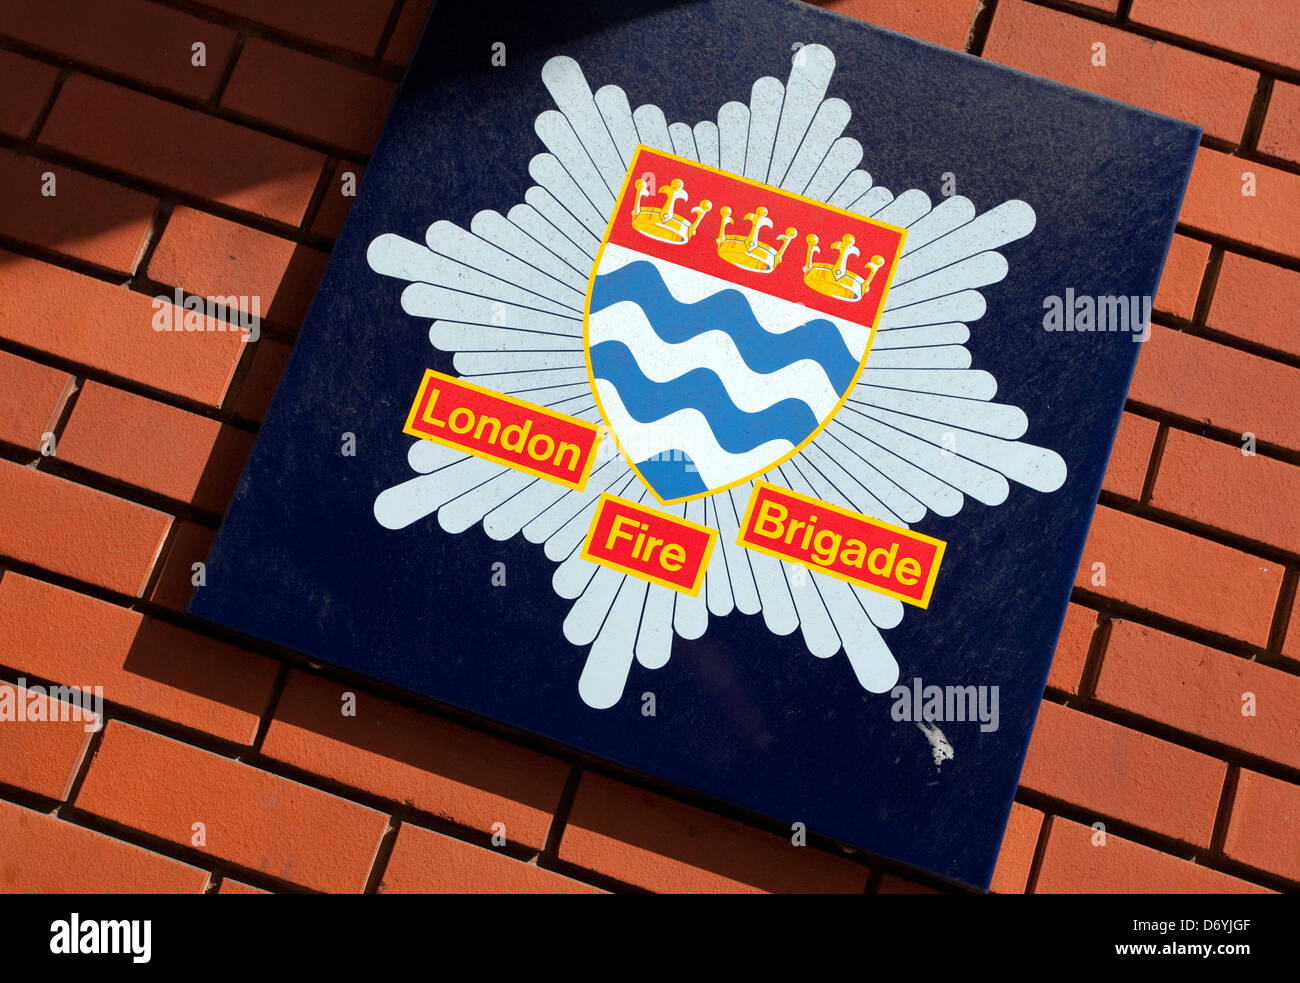 London Fire Brigade crest on fire station, London - Stock Image